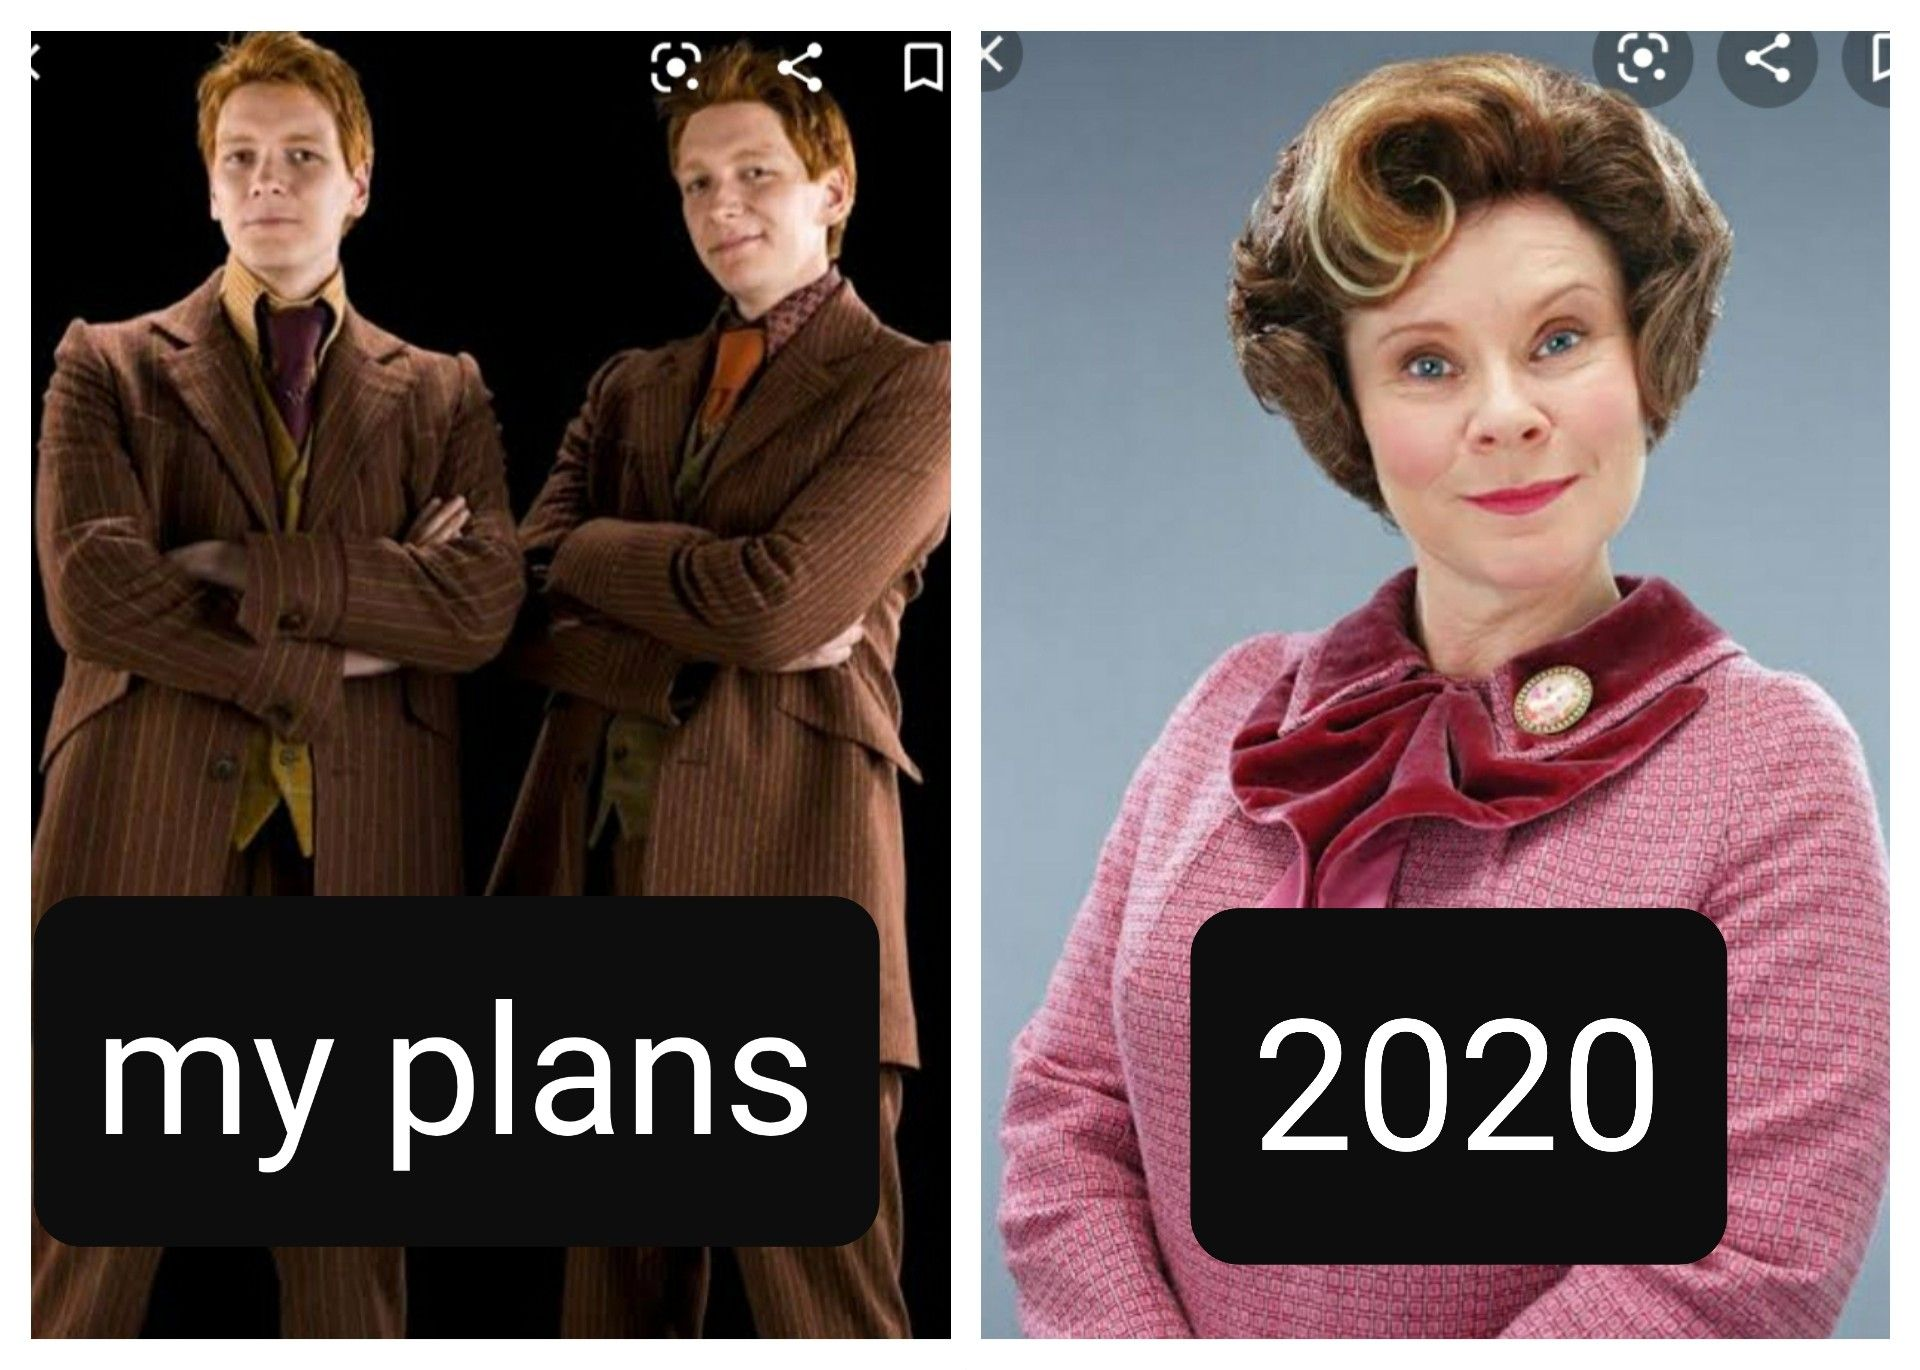 Seriously In 2020 Harry Potter Memes Hilarious Harry Potter Jokes Harry Potter Memes